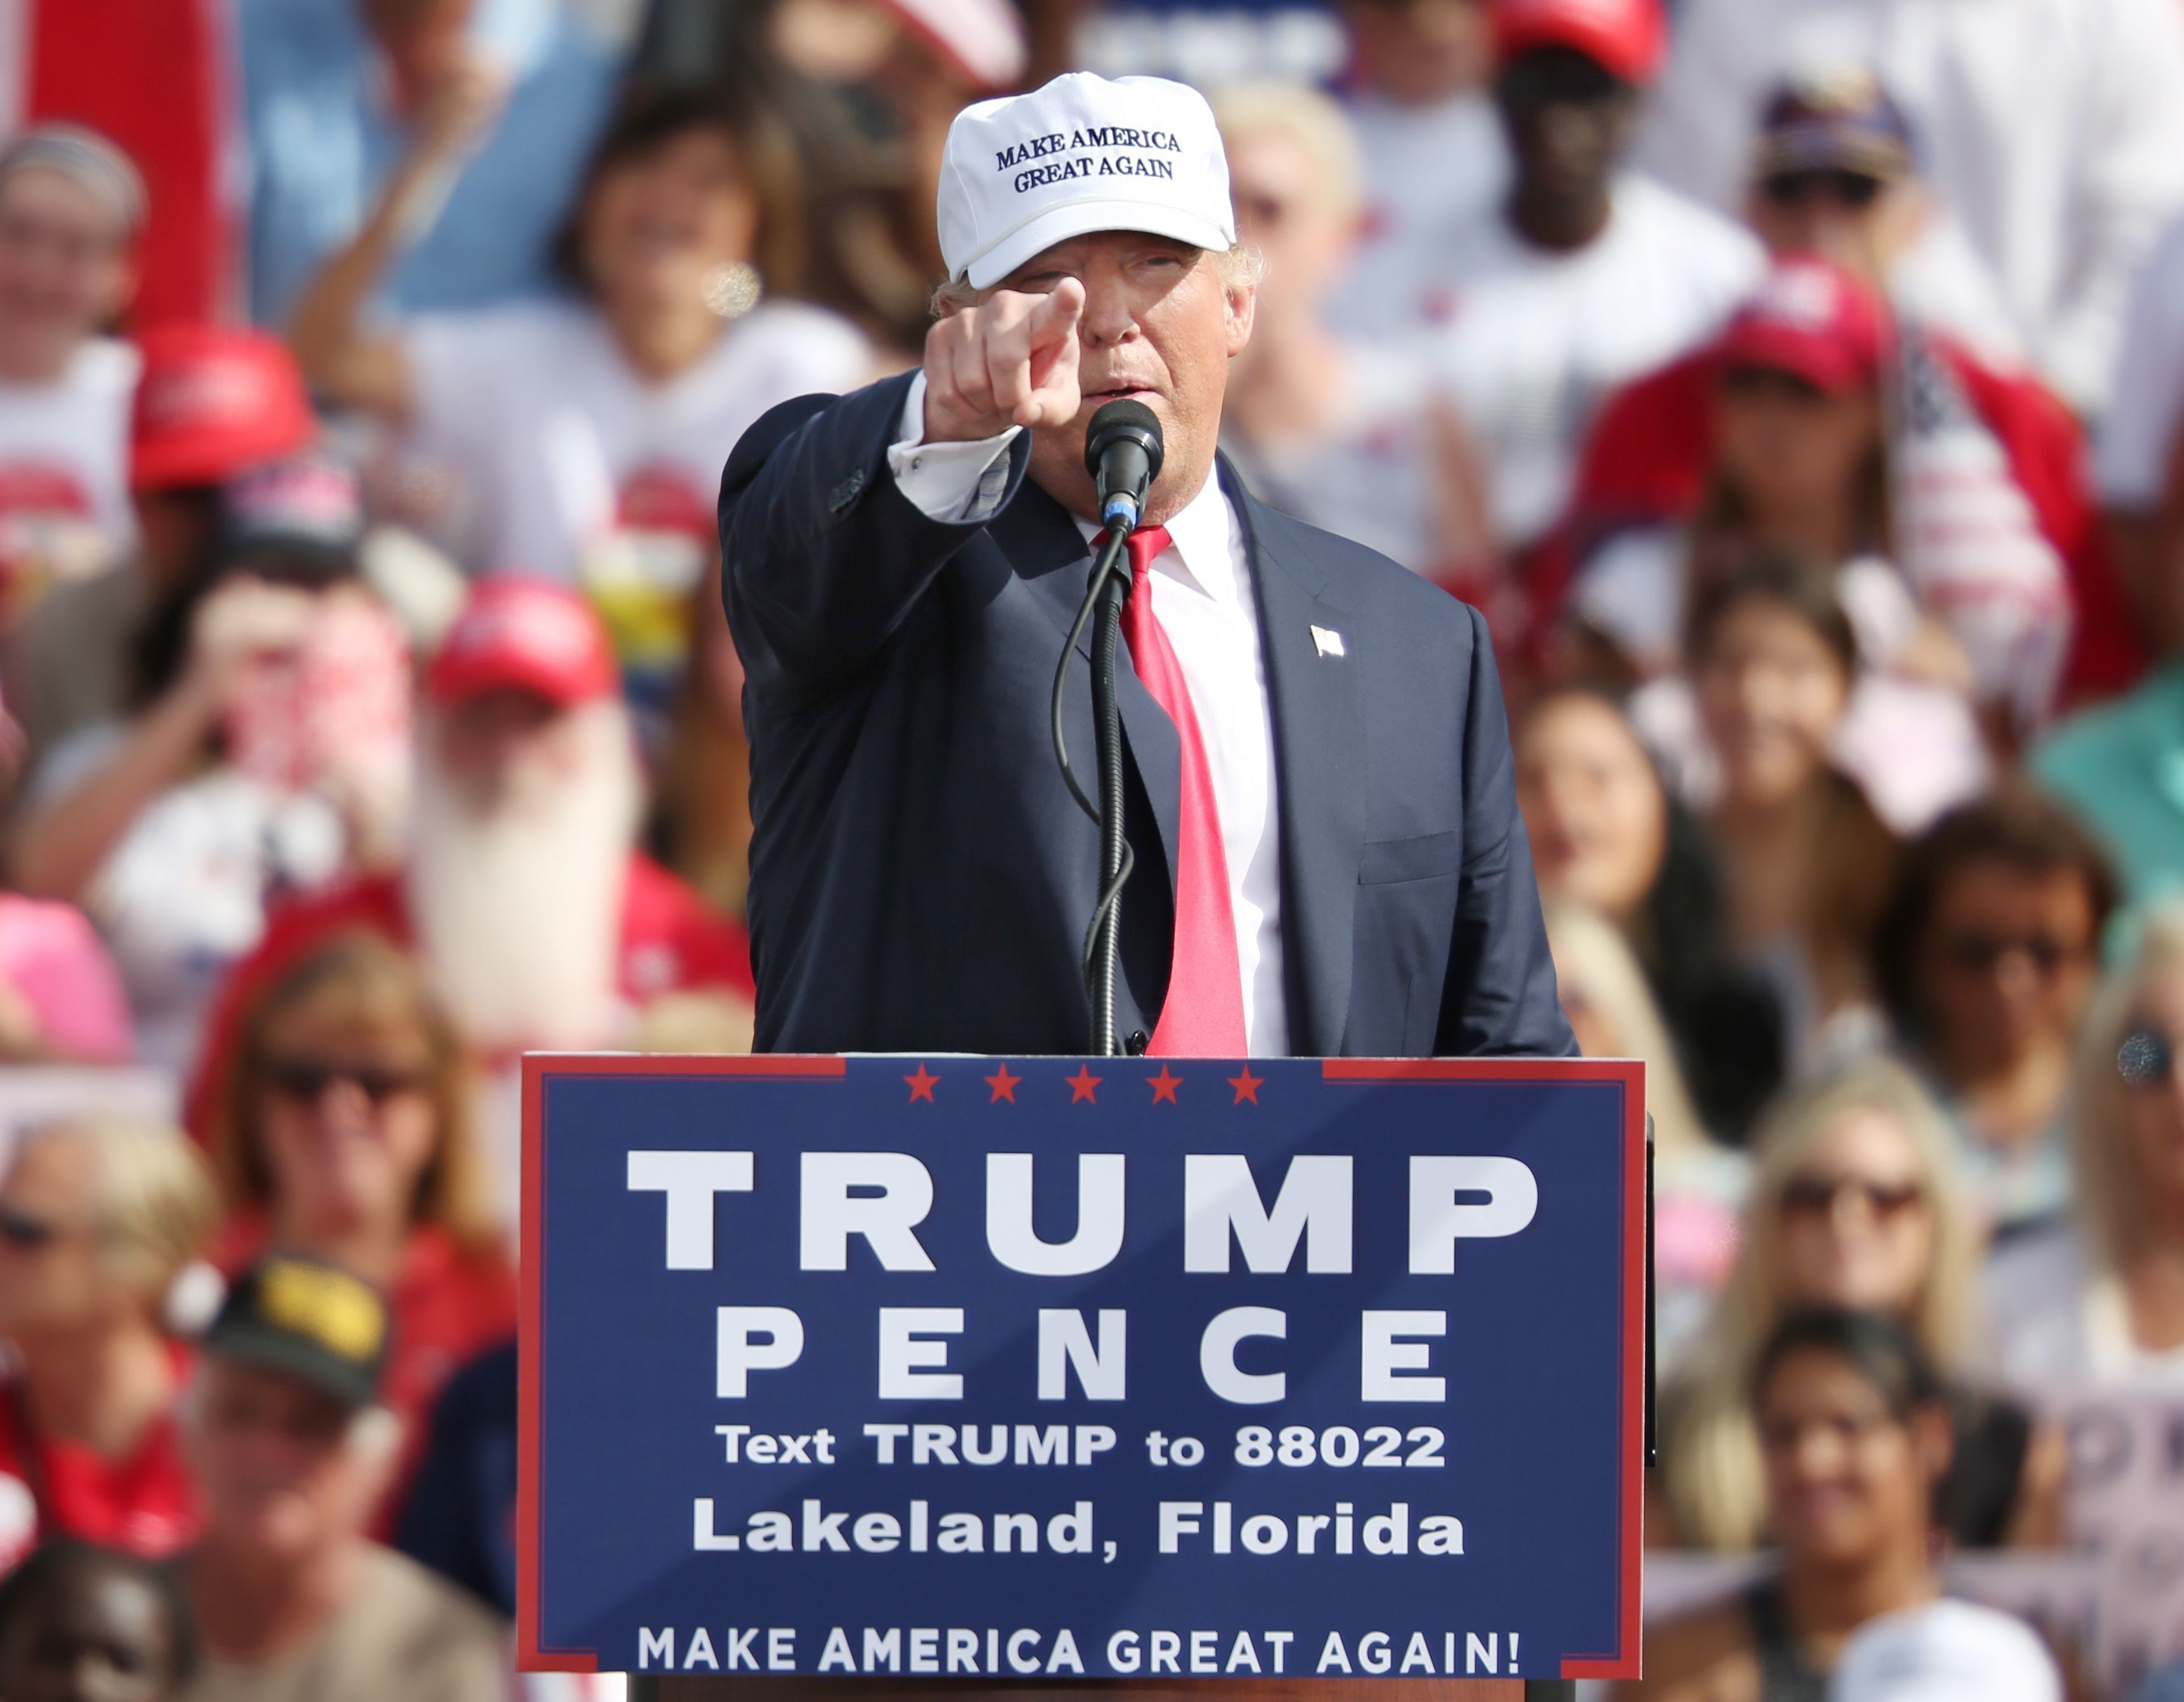 Trump addresses supporters during a campaign stop in Lakeland, FL on Oct. 12.